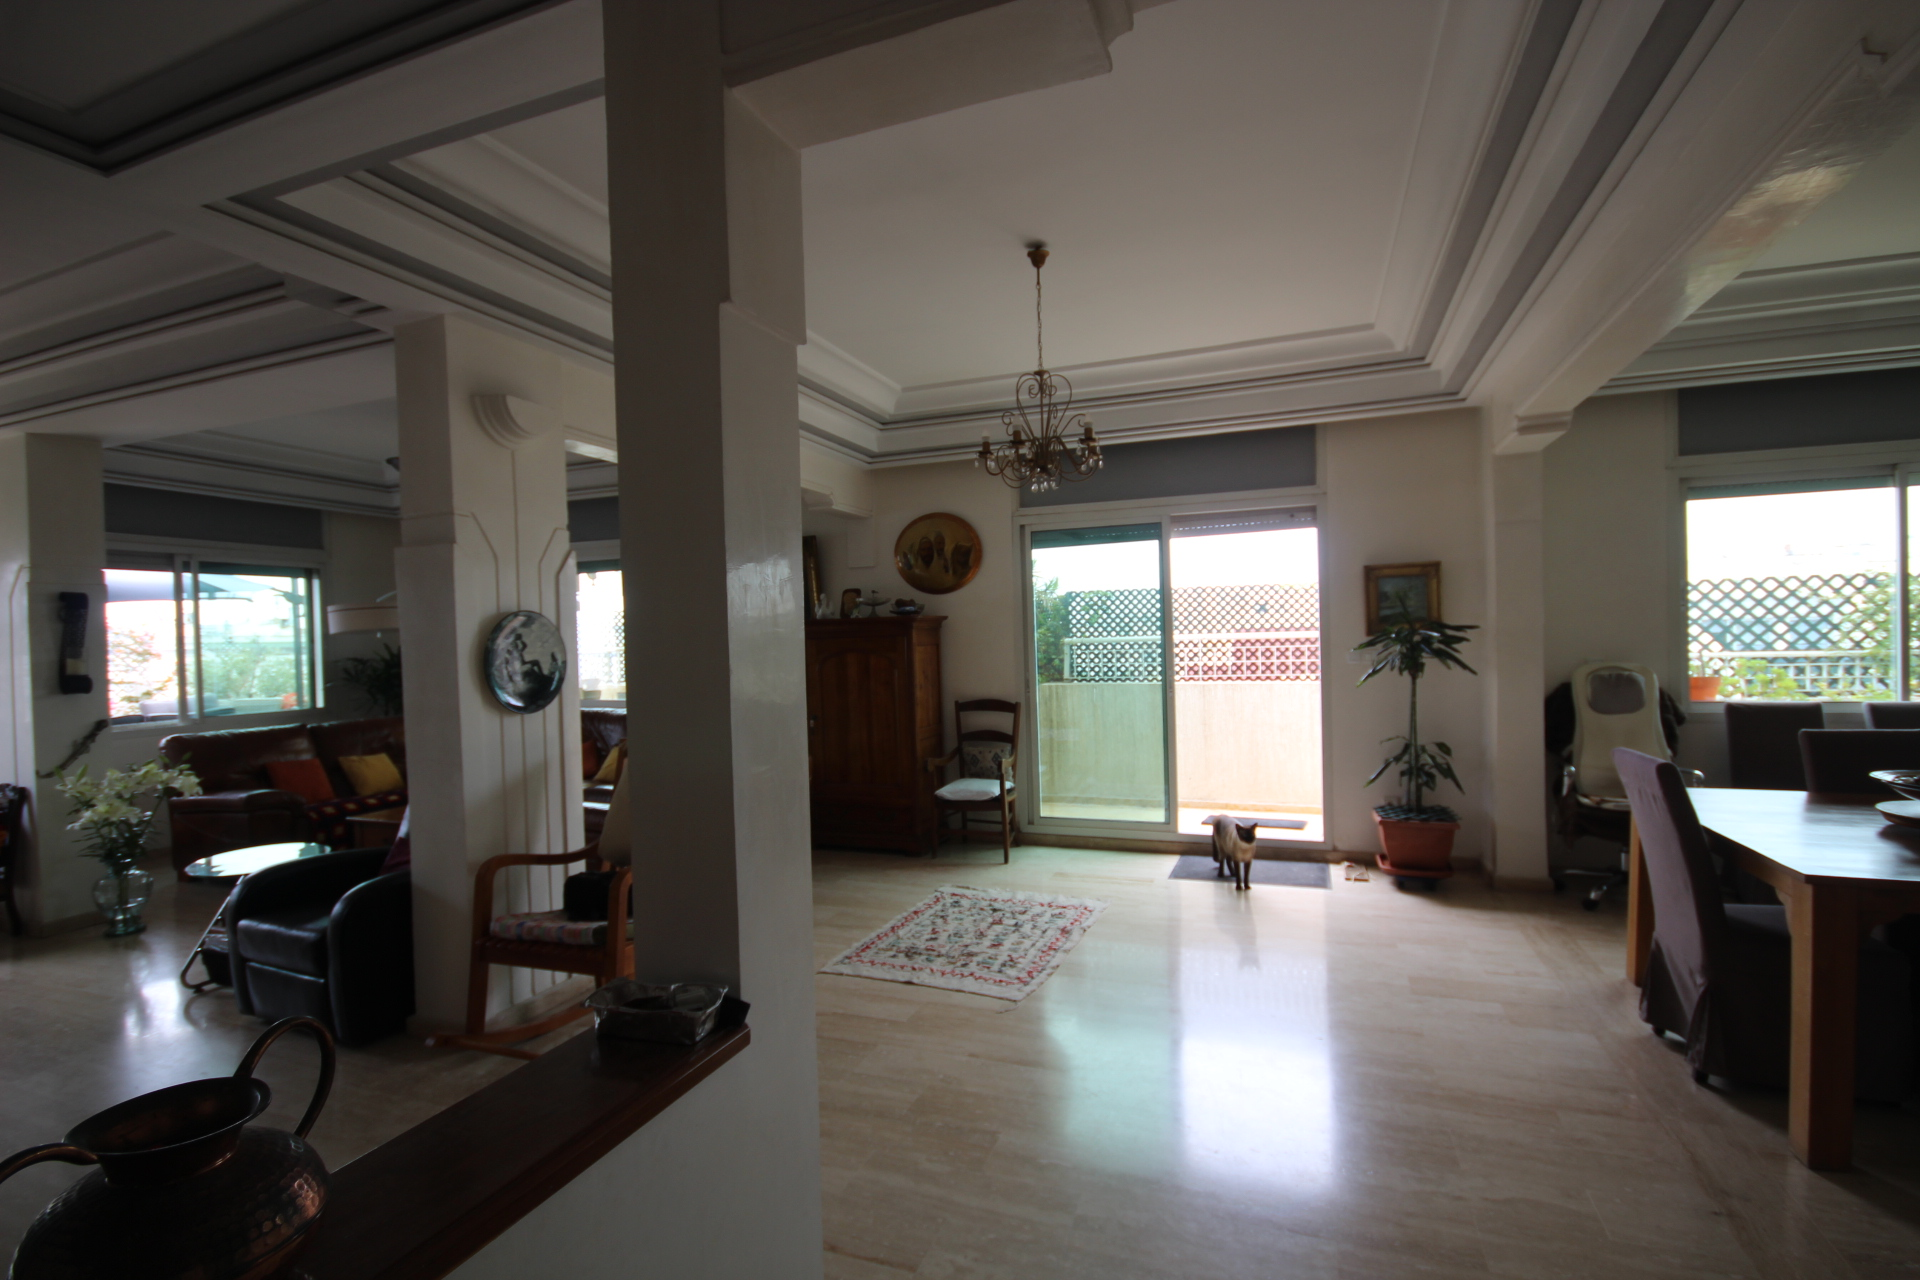 Casablanca, Gauthier, EXCLUSIVITE, vend Appartement toit terrasse de 200 M² habitable